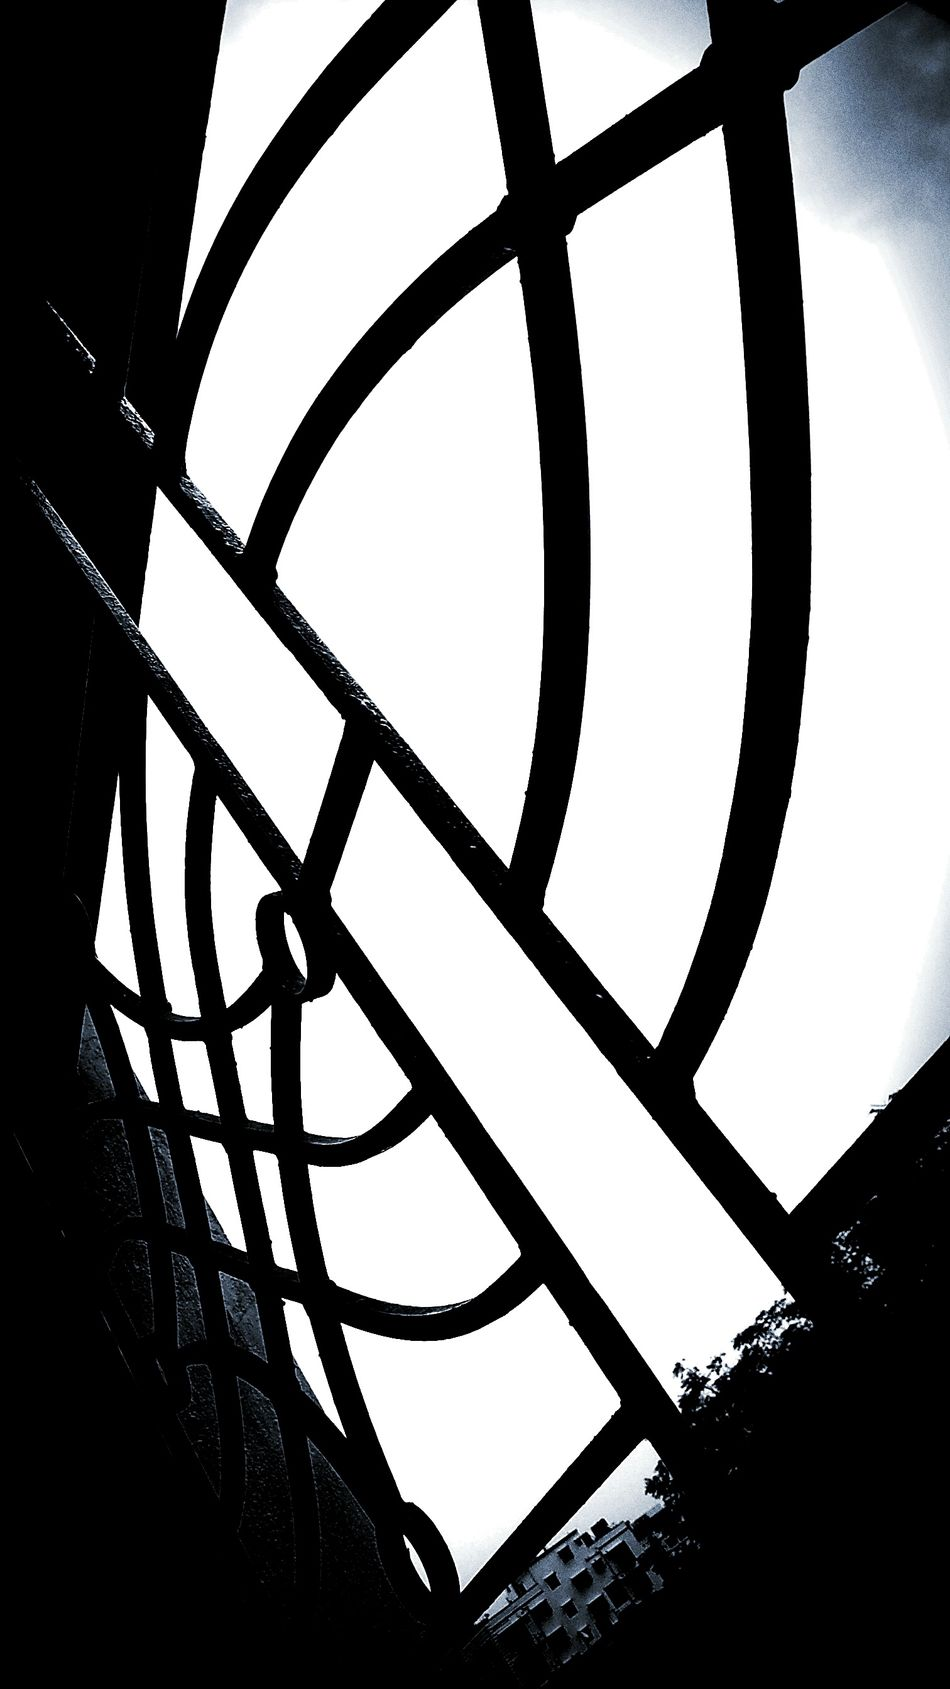 Sport Silhouette No People Low Angle View Sky Built Structure Outdoors Day Architecture Golf Club Close-up POTD Full Frame Beauty In Ordinary Things Photooftheday Randomshot Gril Window Window View